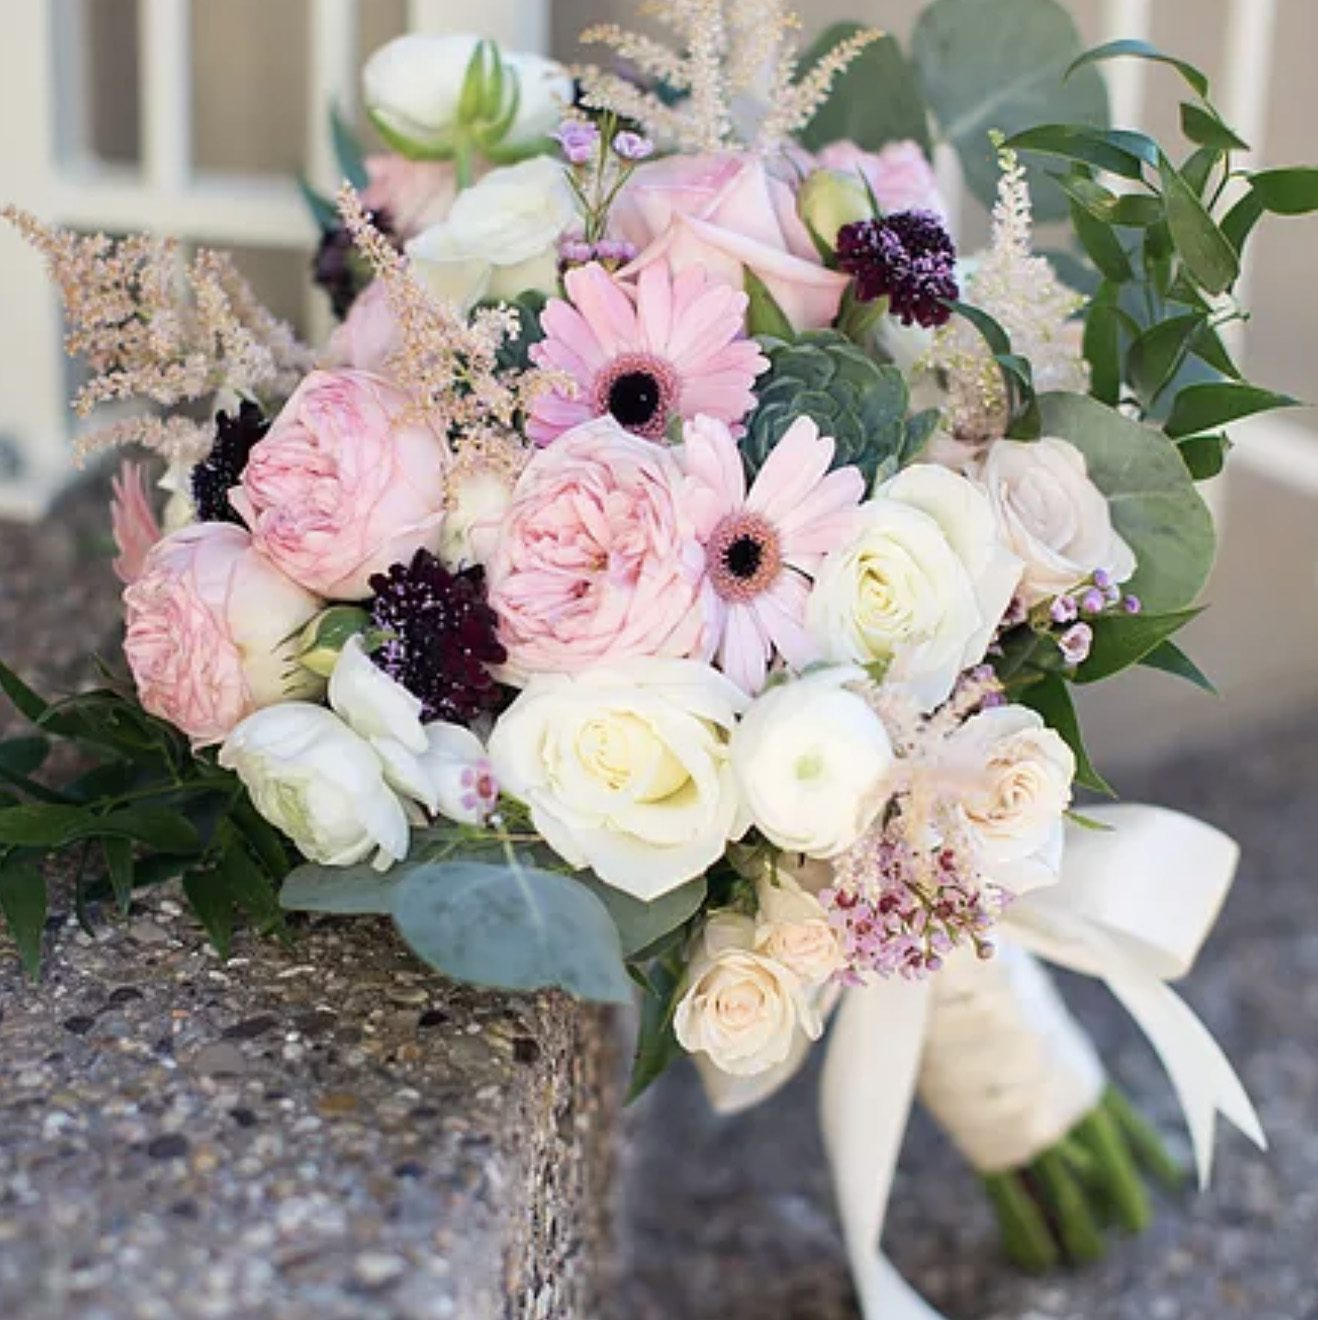 wedding flowers bouquet leaning against stone